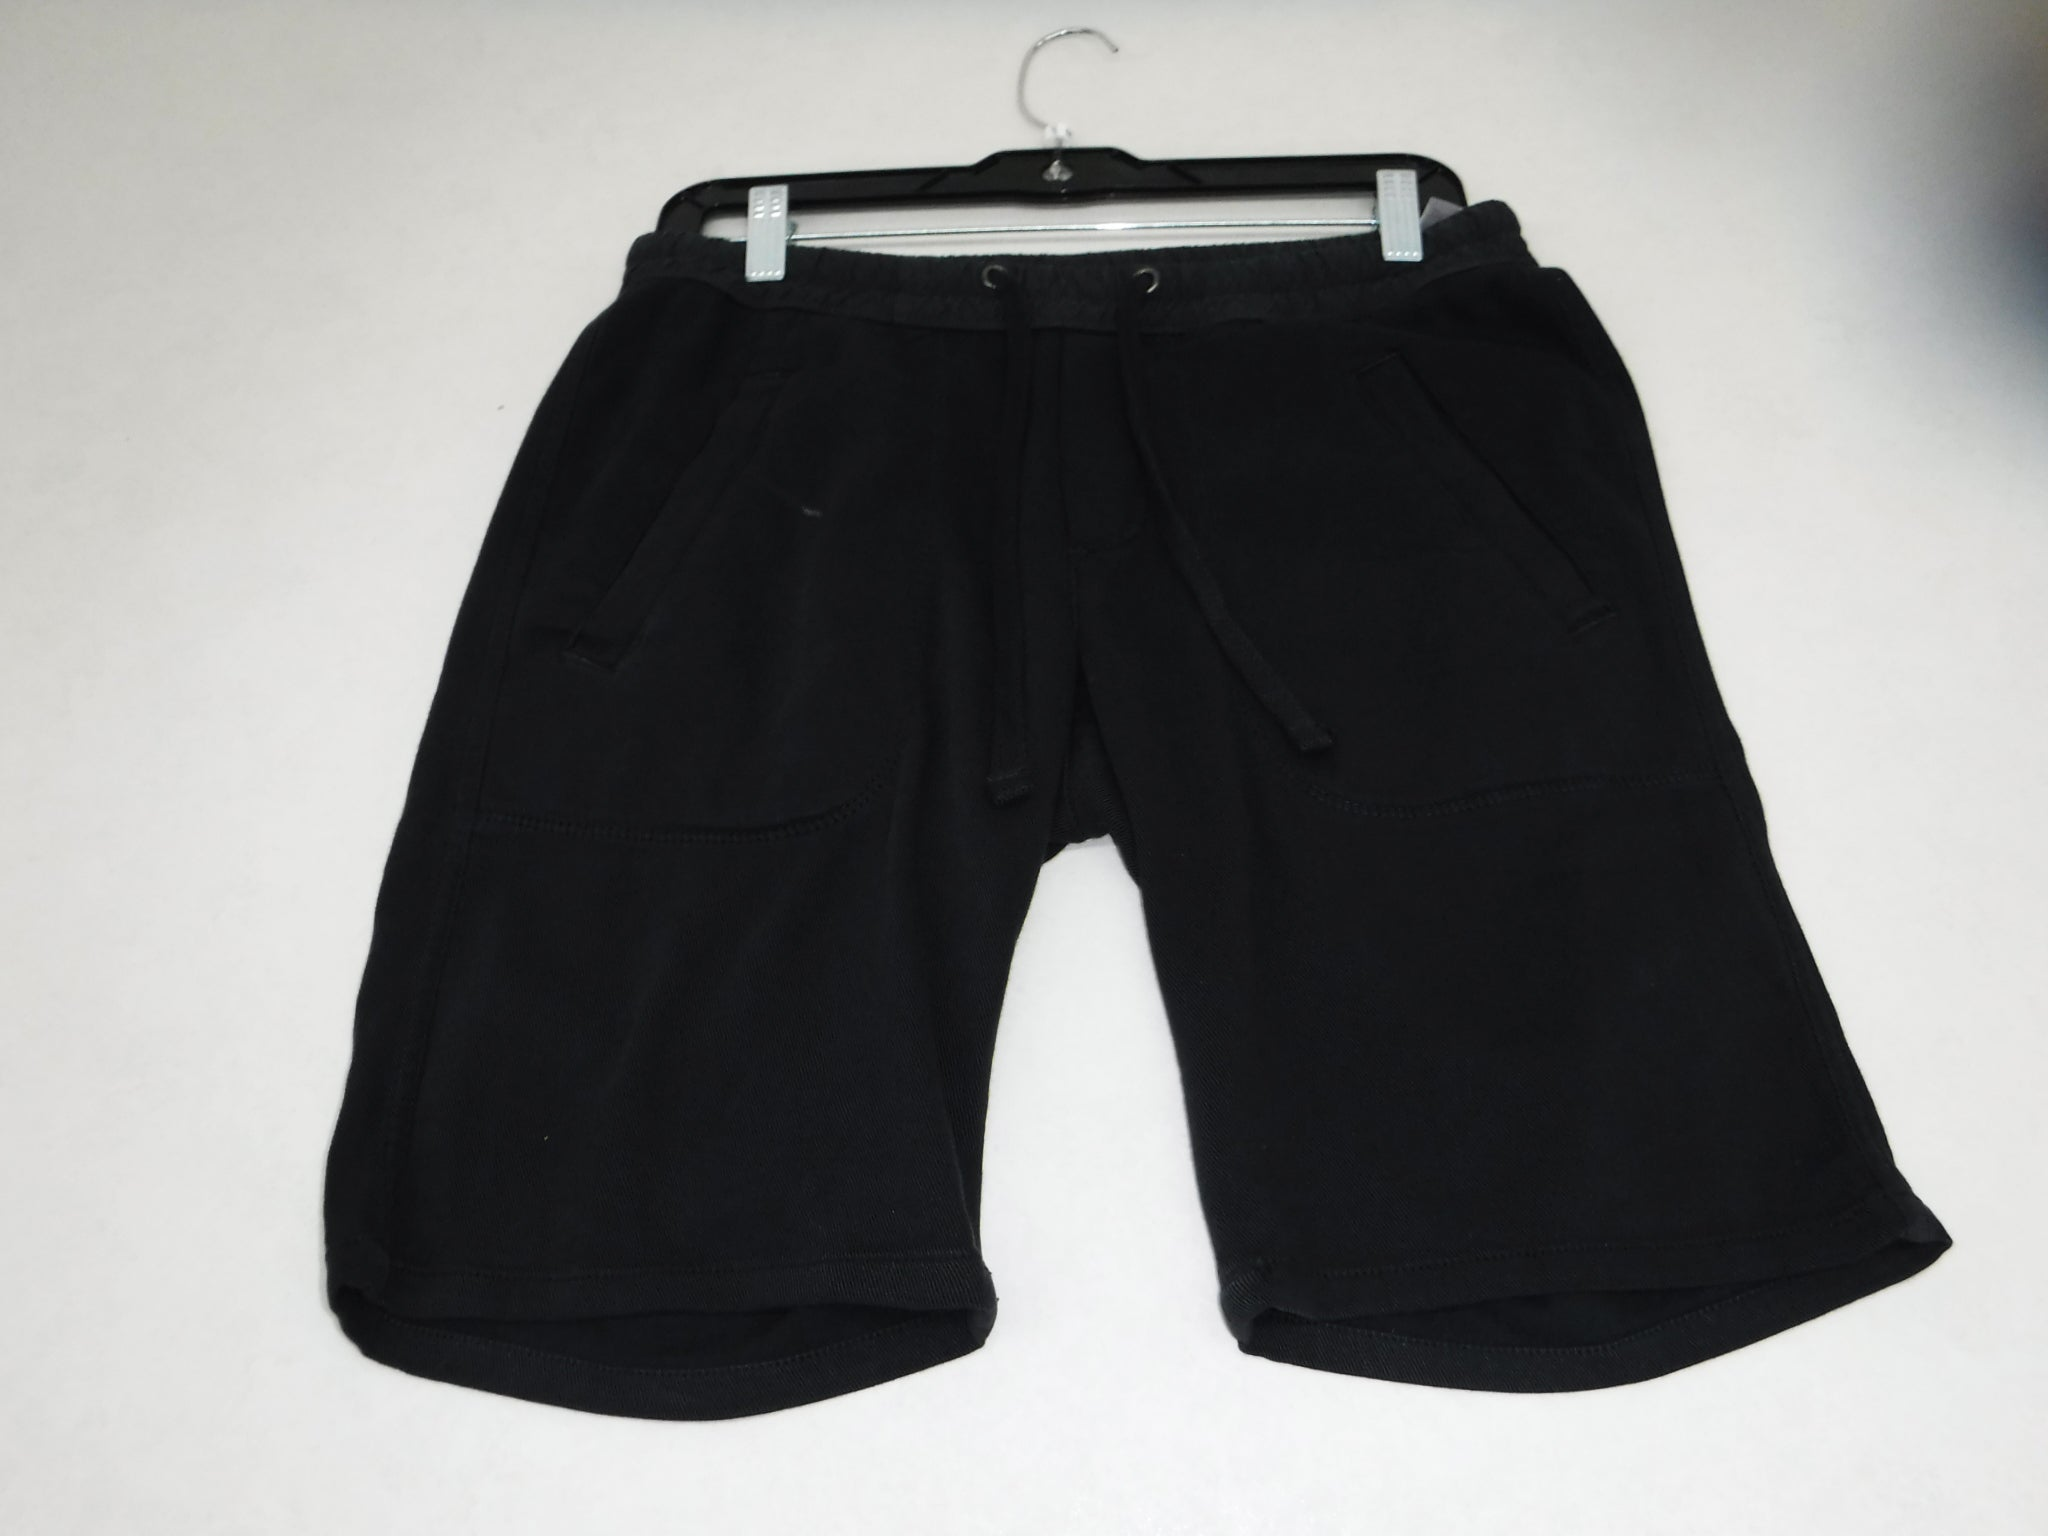 Jame Perse Shorts